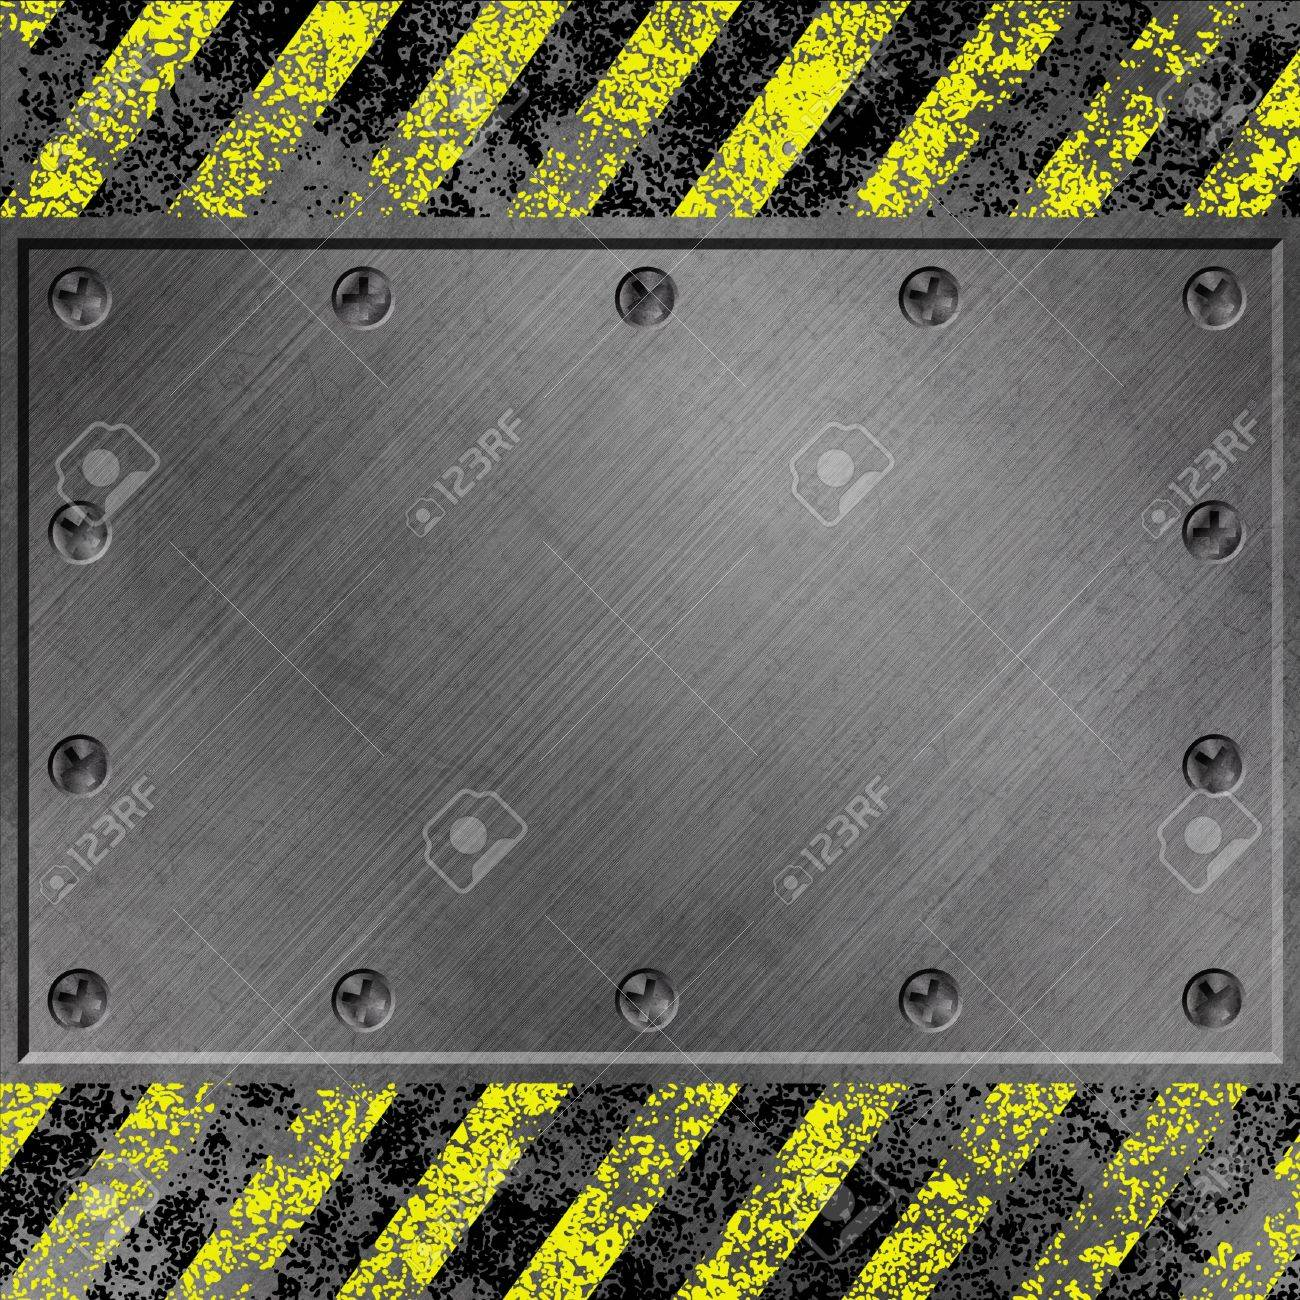 A Grunge Metal Background with Black and Yellow Stripes and Screws Stock Photo - 15058010